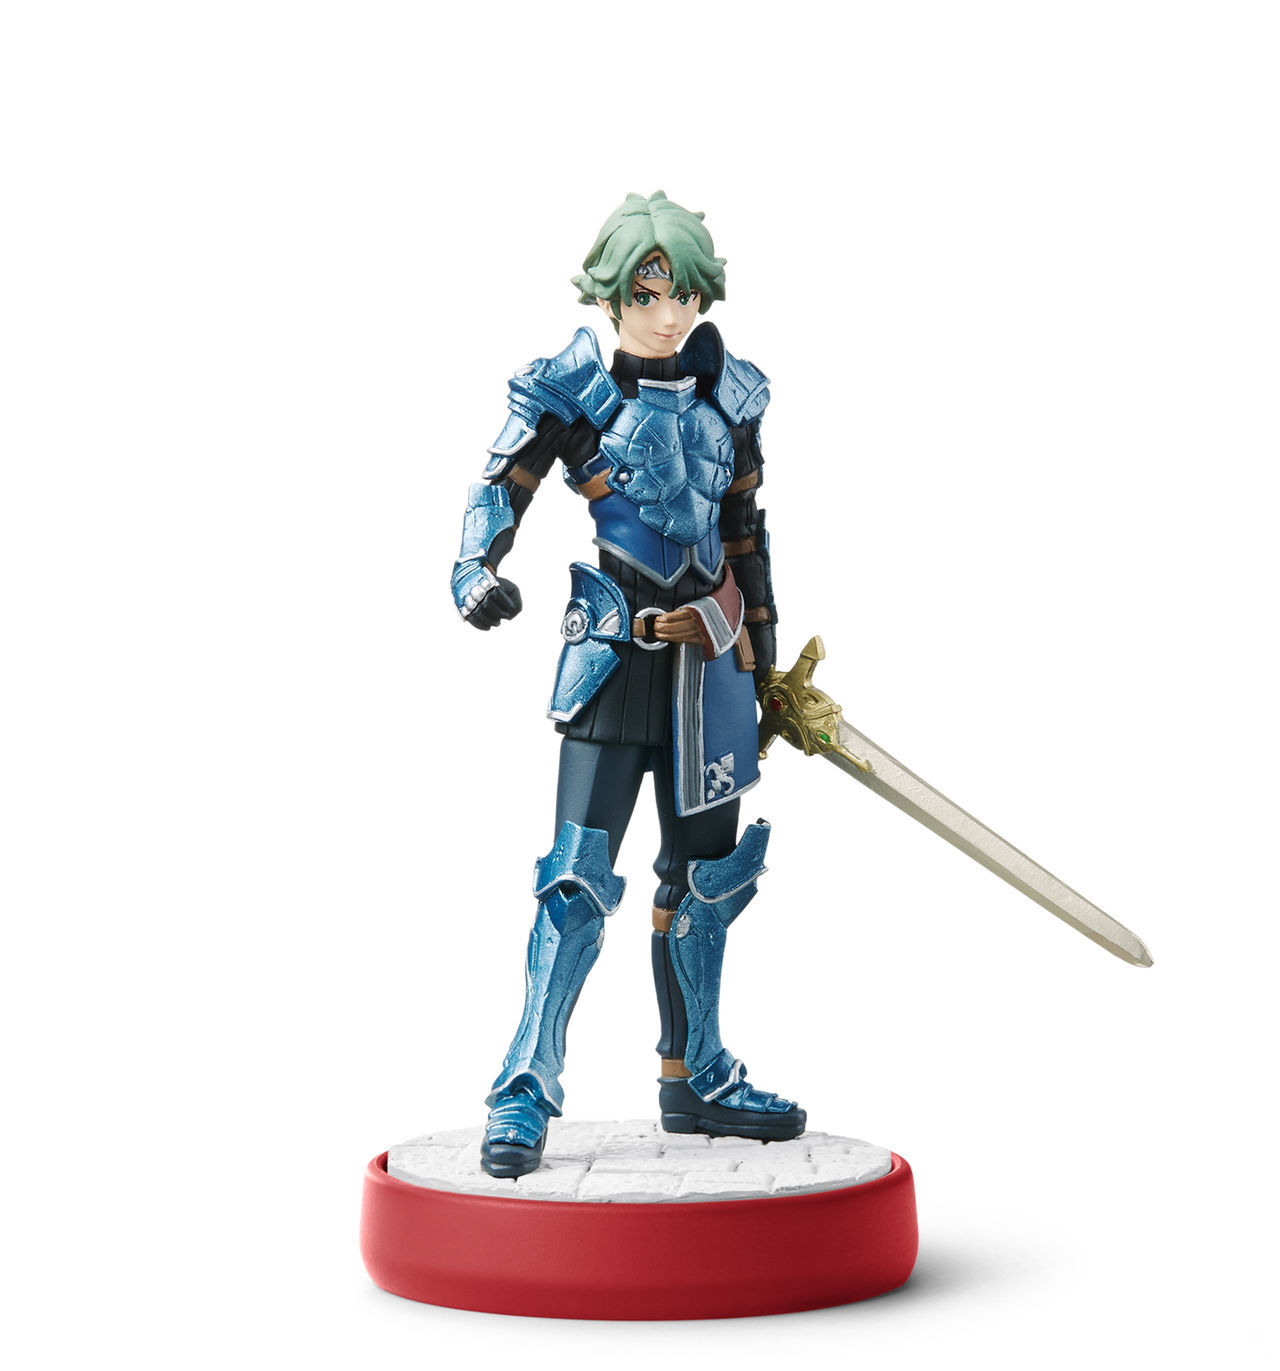 More details on the use of amiibos in Fire Emblem Echoes